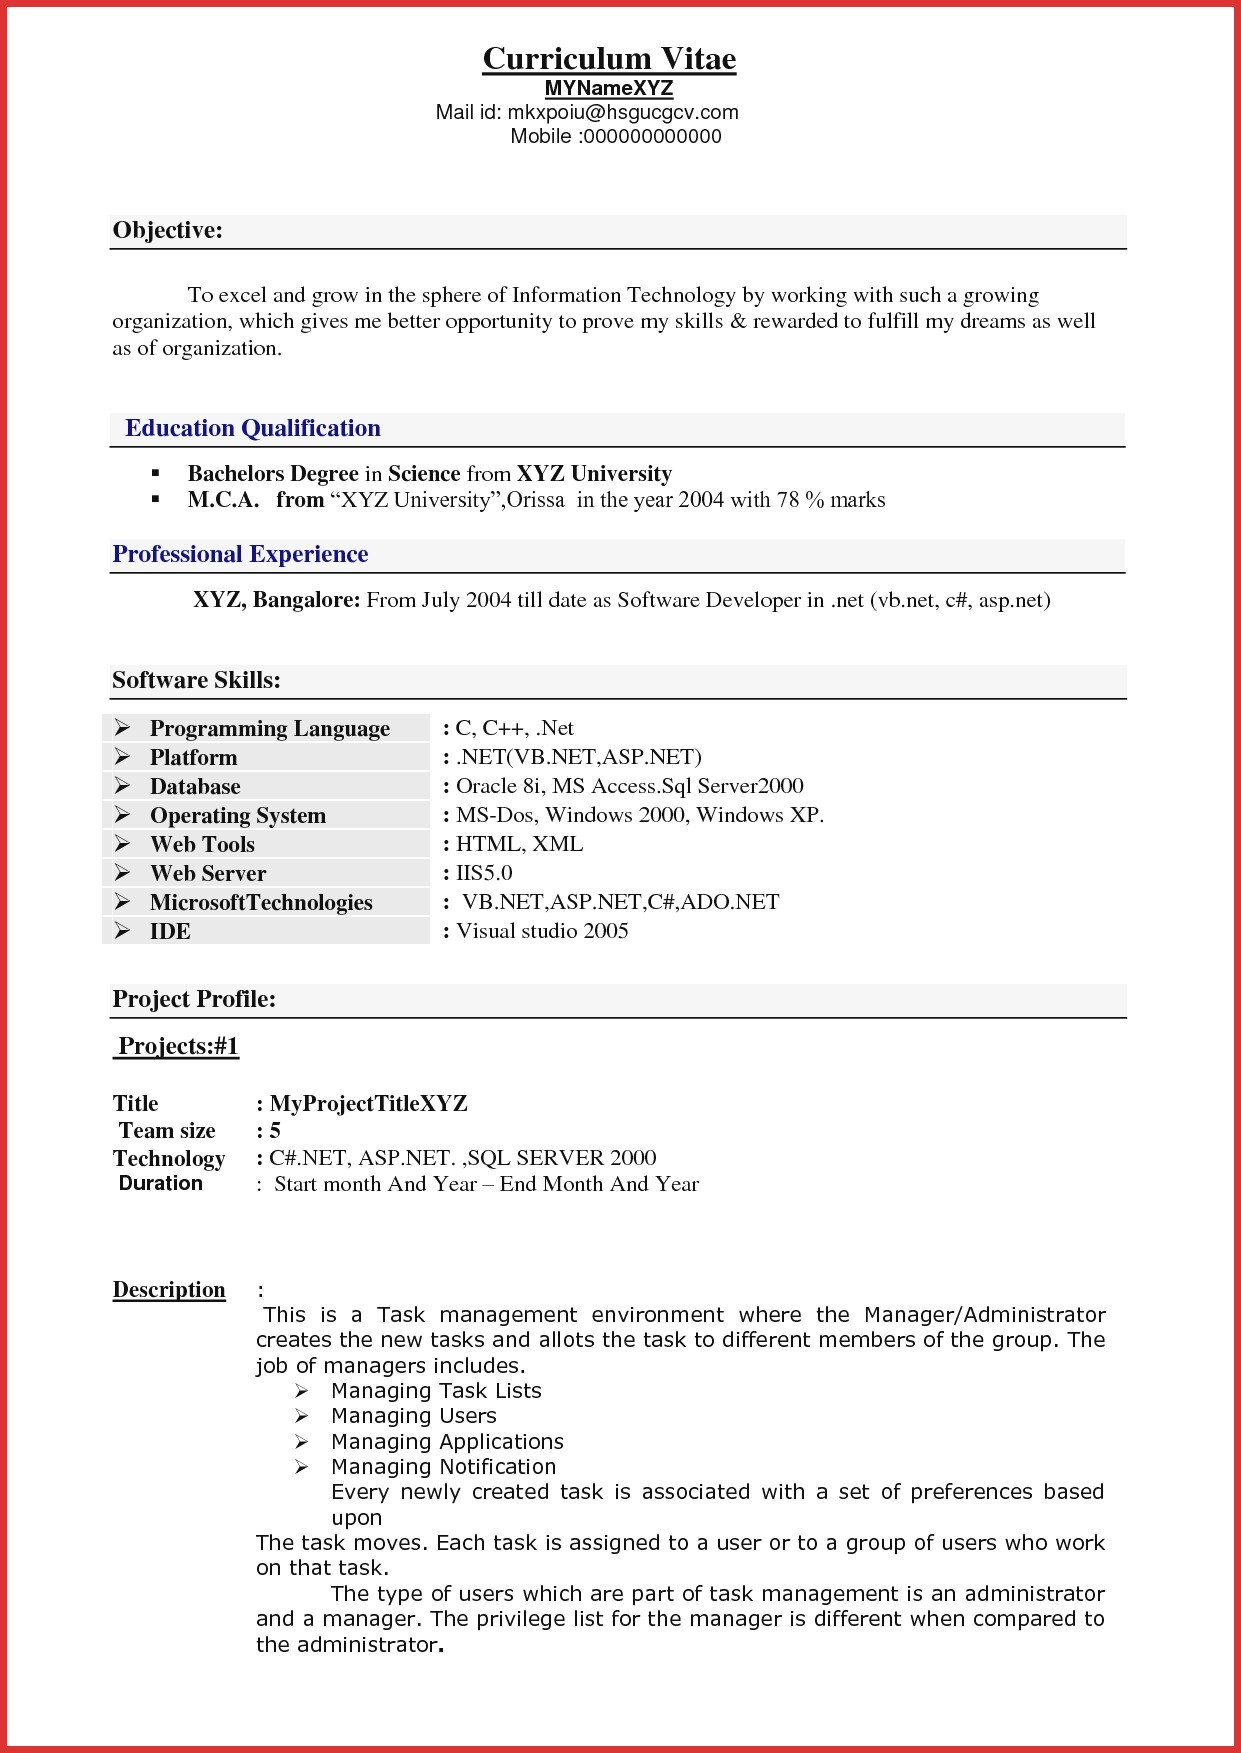 007 Research Paper Free On Poverty In America Well Written Resume Lovely Writing Software Example And Formidable Full